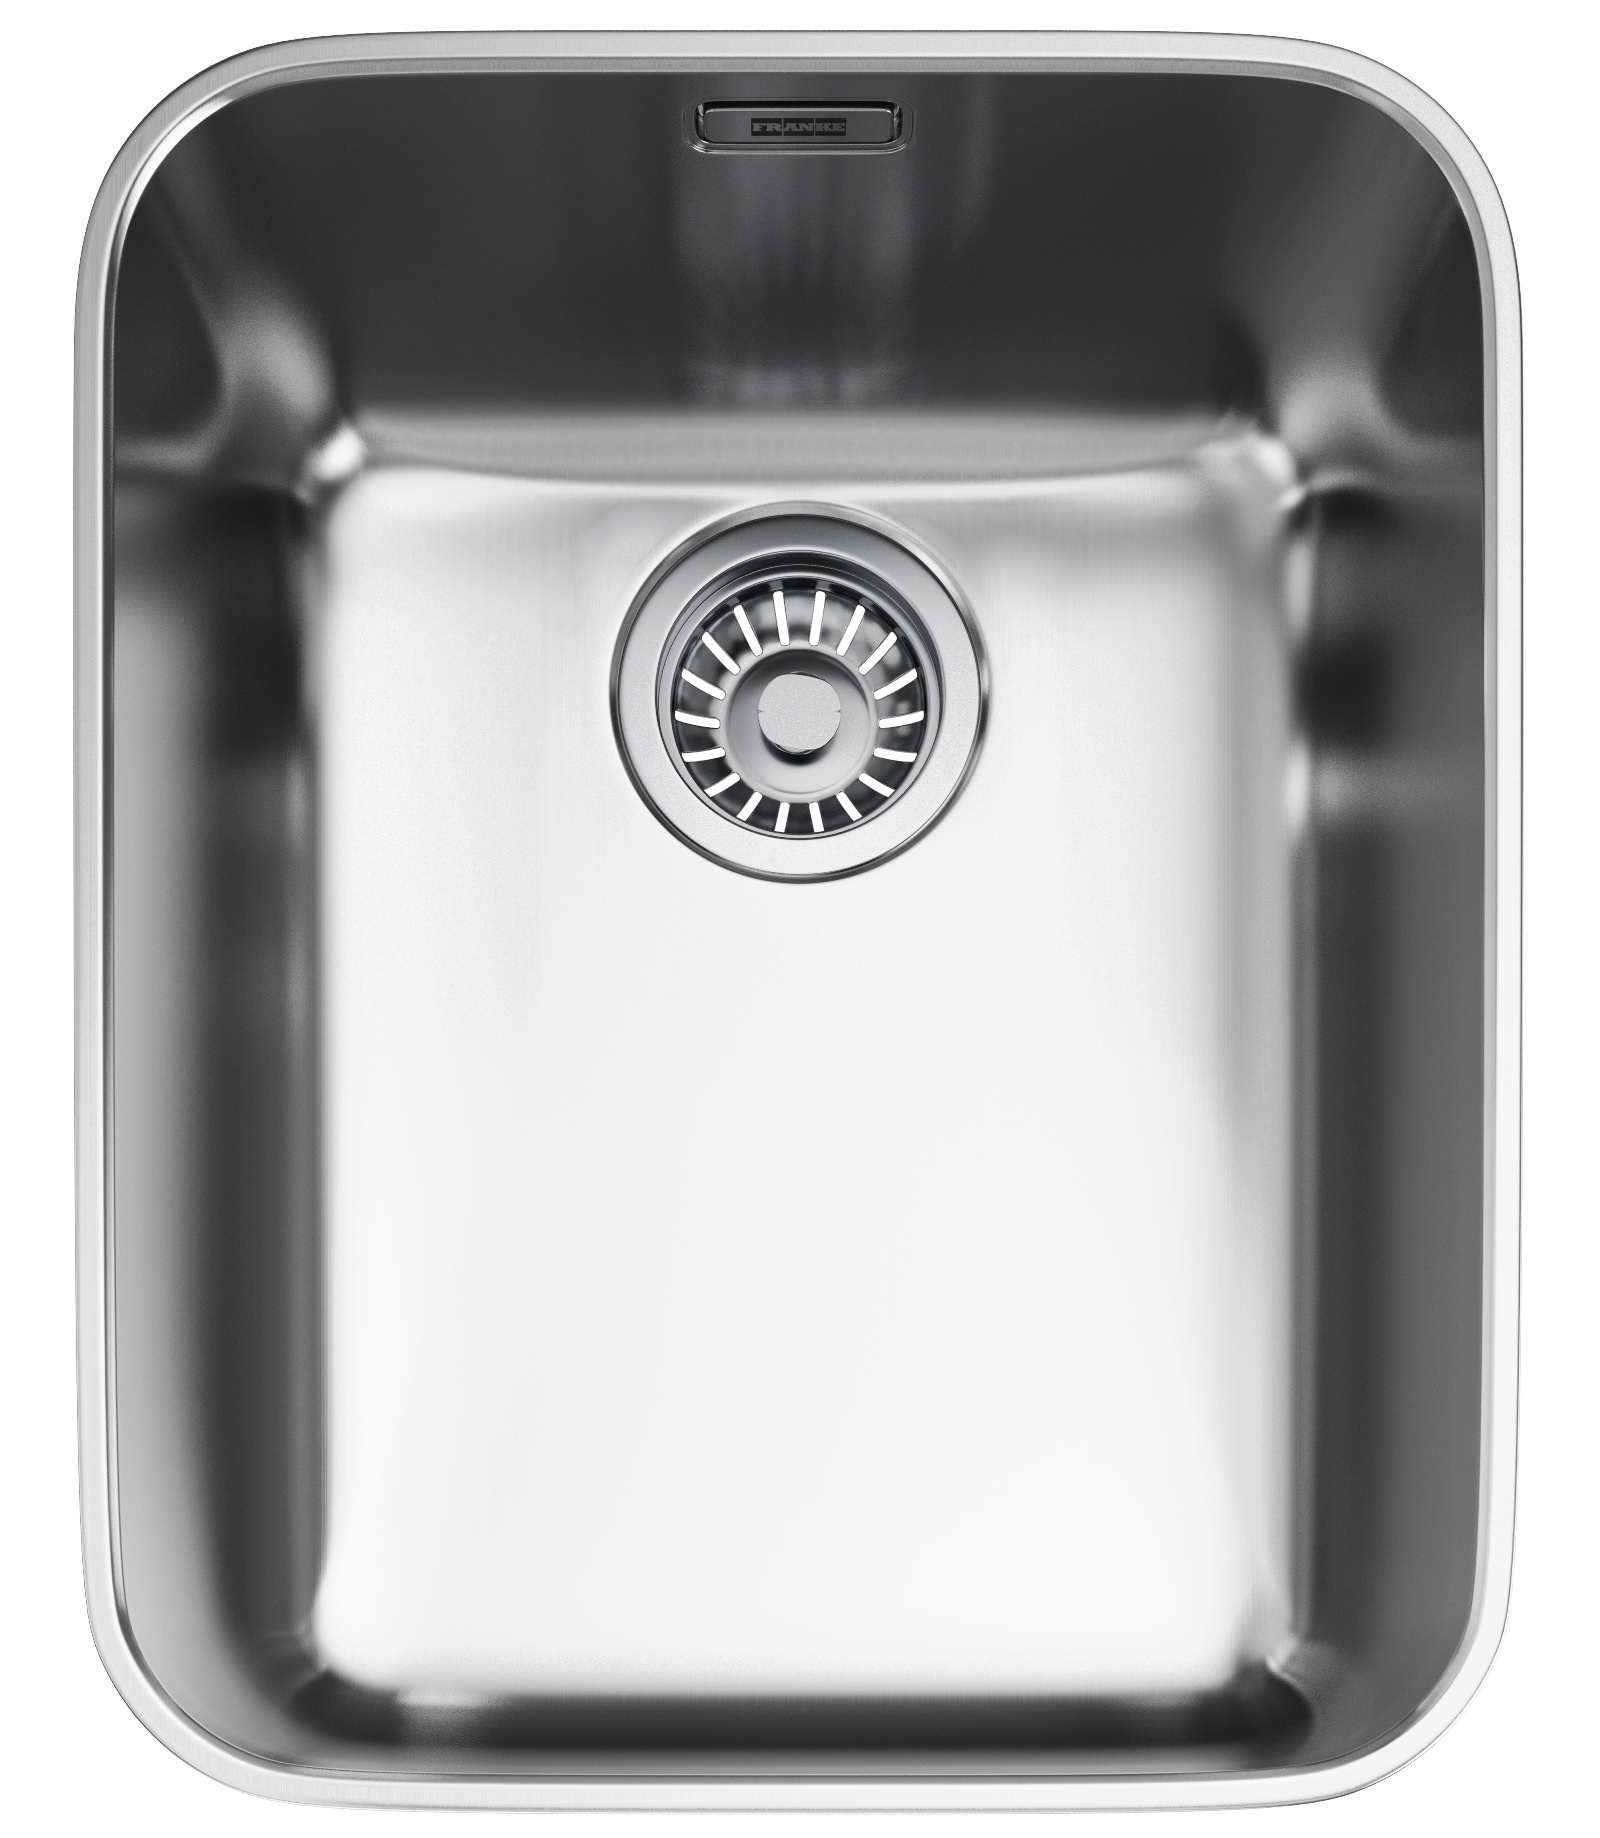 Franke Ss Sinks : Franke Ariane ARX 110 35 Stainless Steel Undermount Kitchen Sink ...